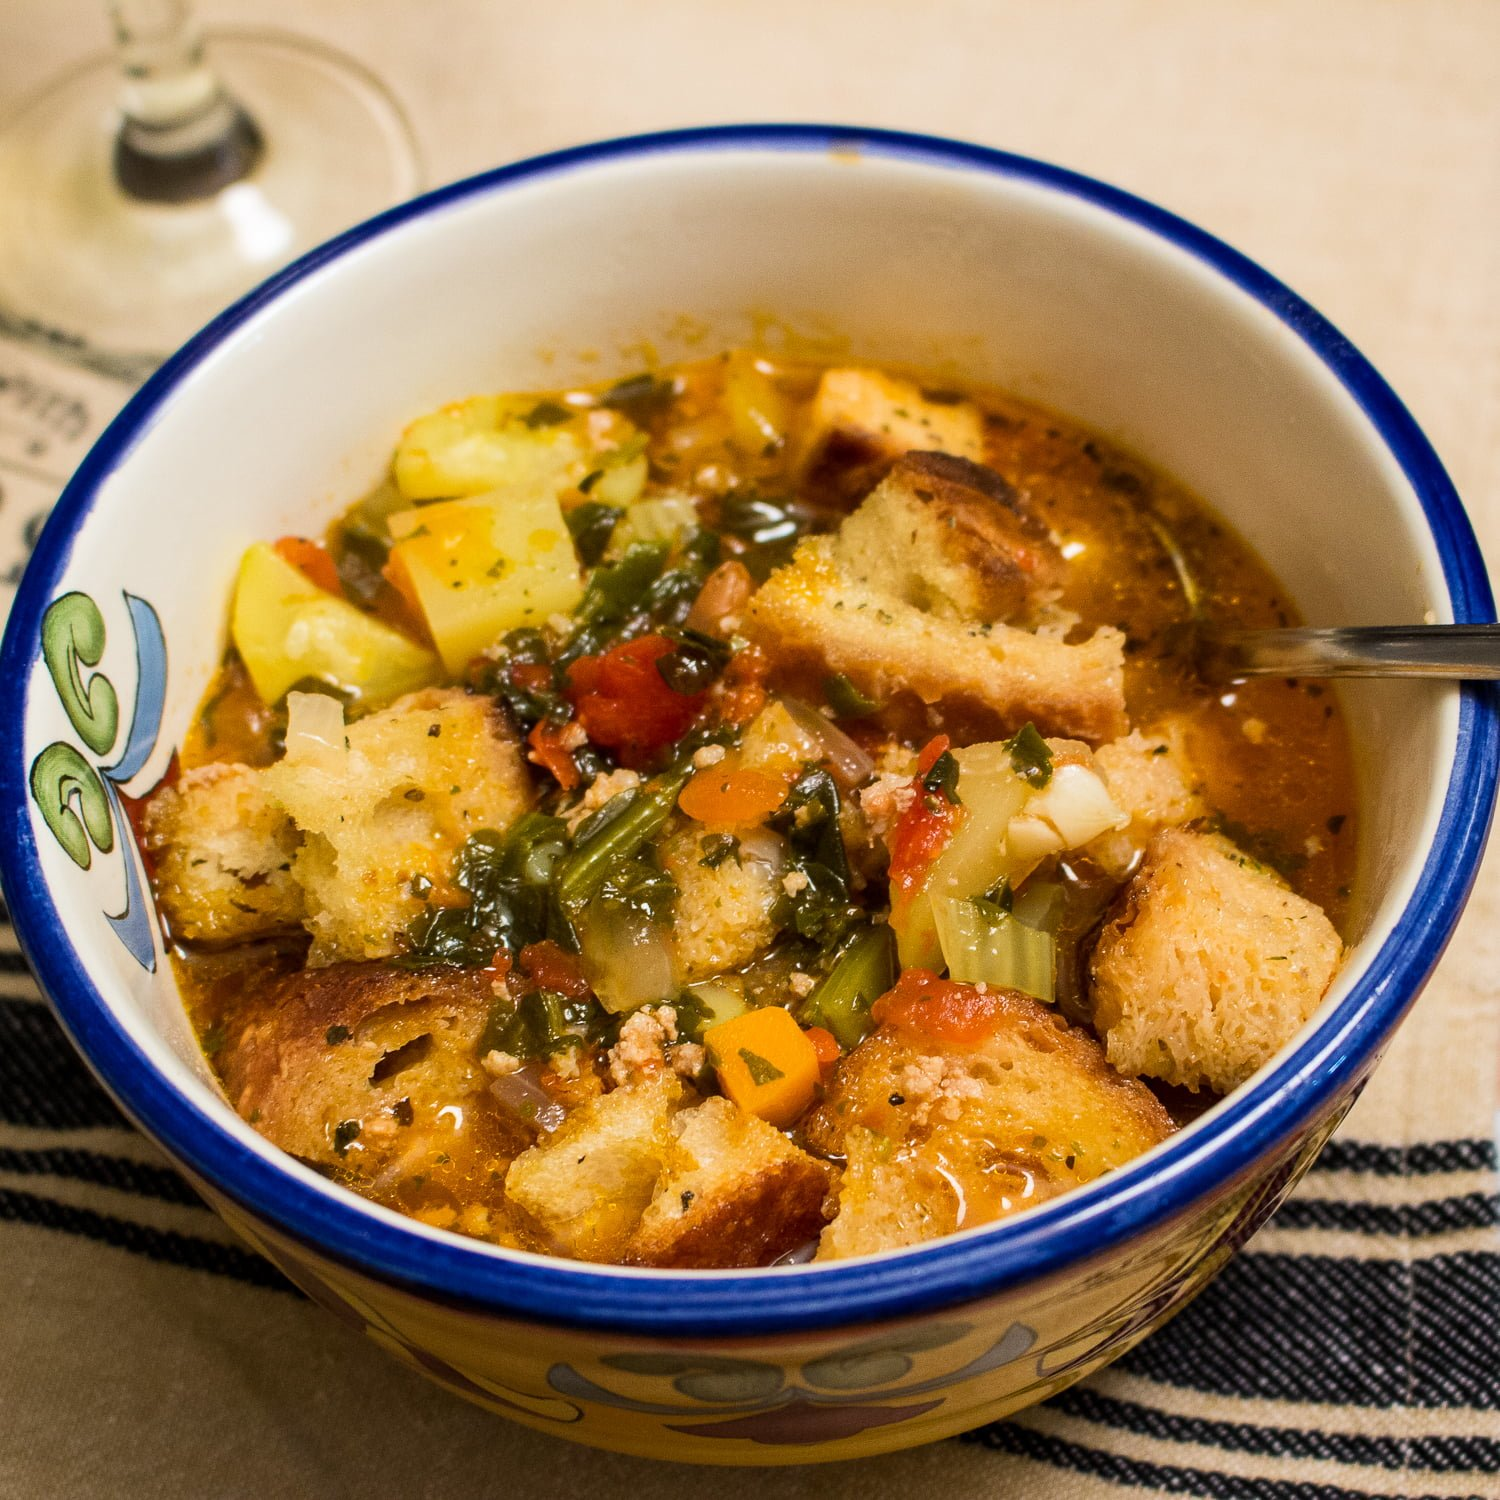 Italian Ribollita Soup with Ground Pork- Ribollita soup is a famous Tuscan hearty soup made with bread, vegetables and sometimes meat.